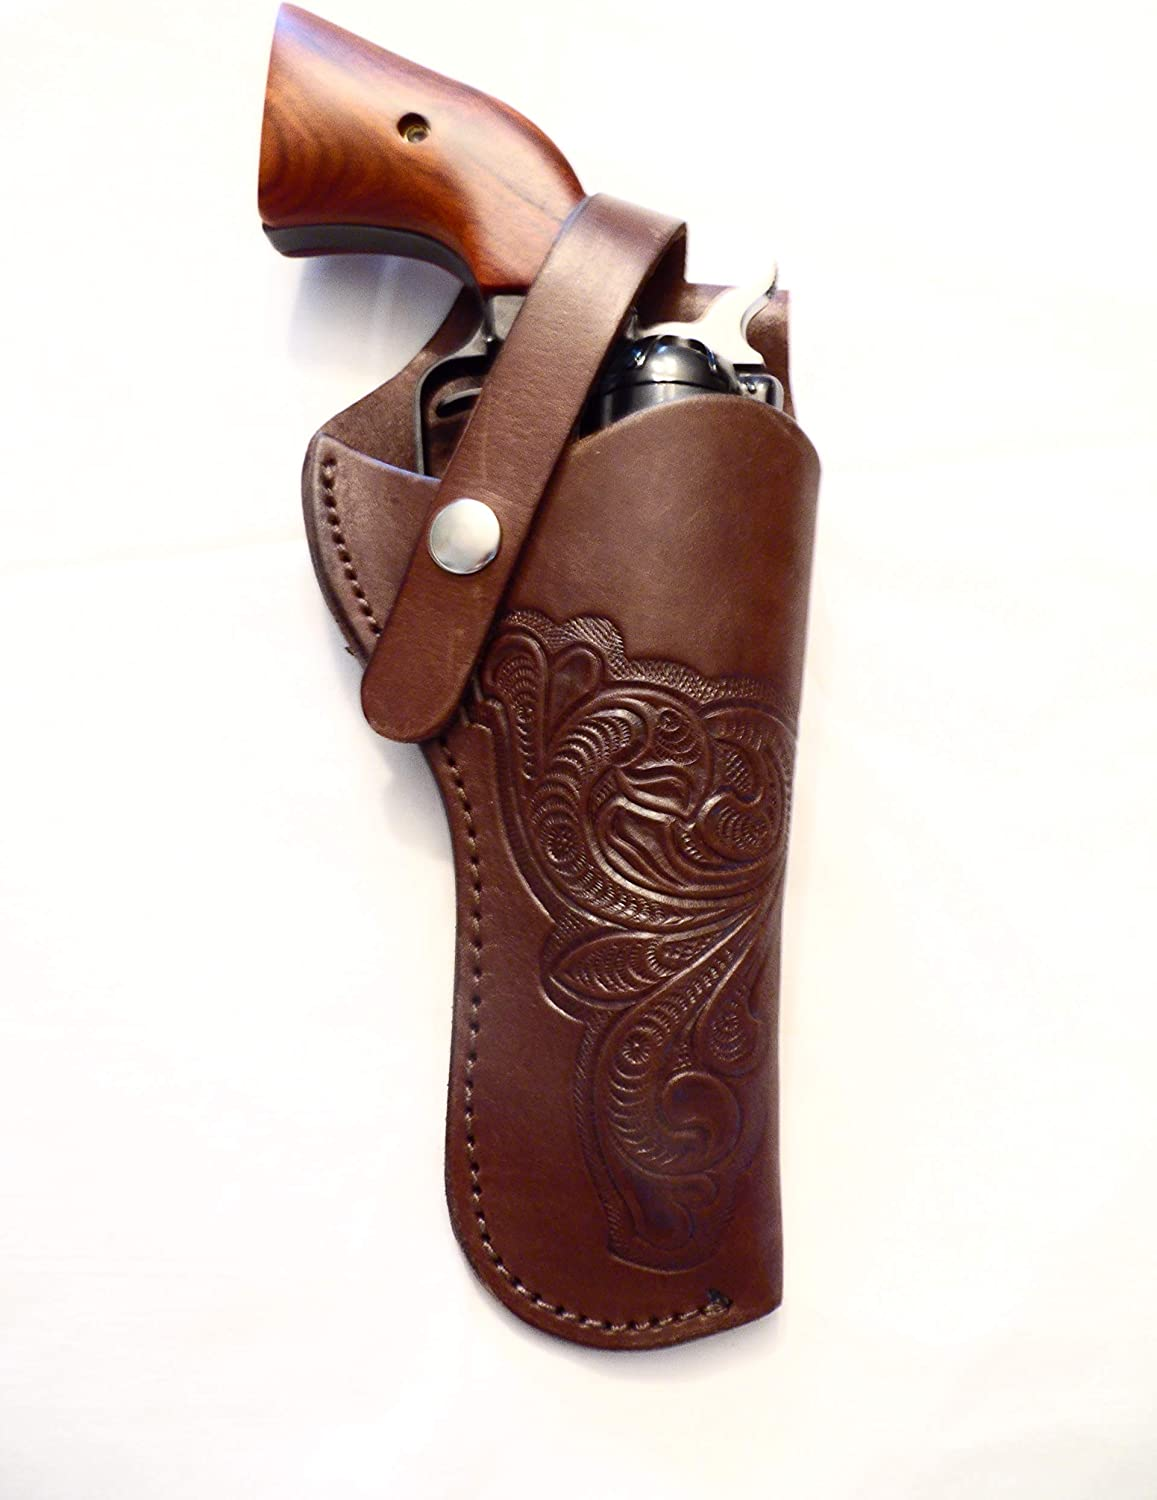 Popular popular Western Gun Credence Holster #601 - Used Rid Heritage Rough Brown for